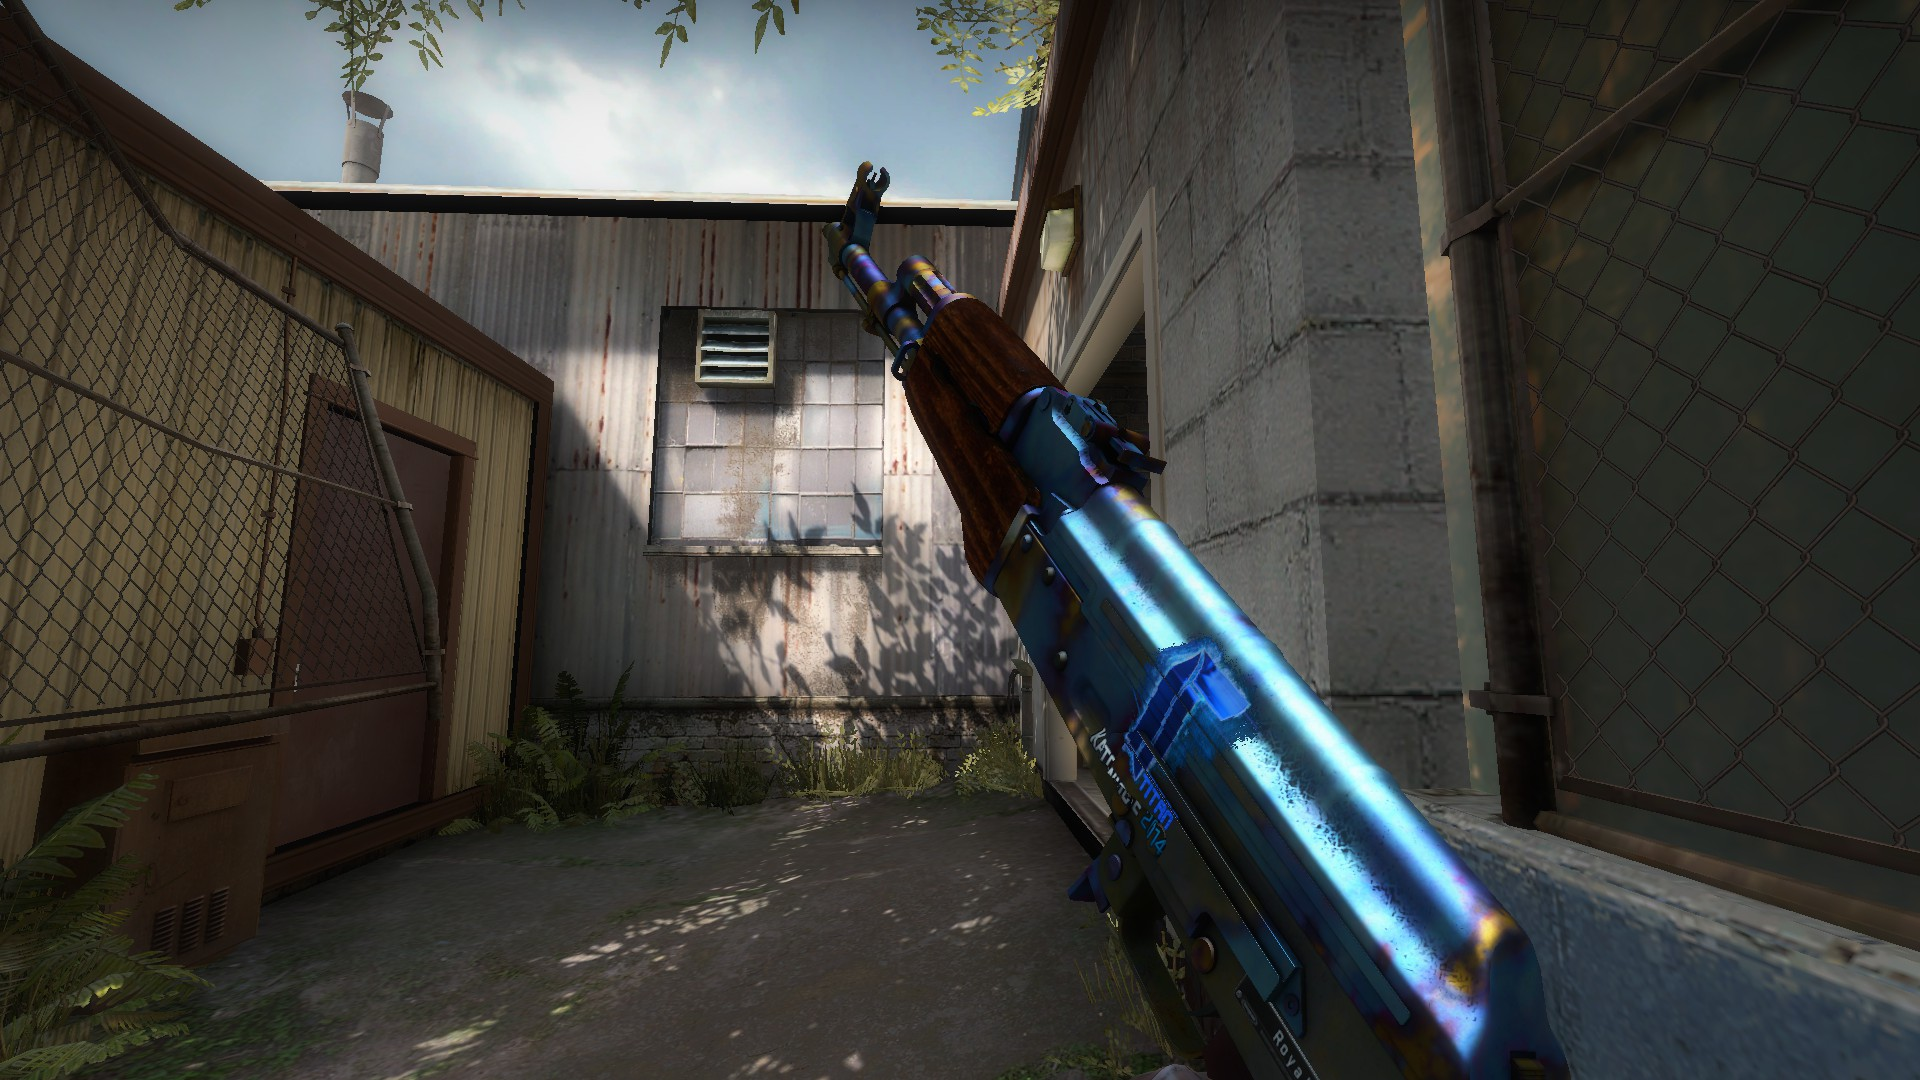 Store] The Case Hardened Store : GlobalOffensiveTrade